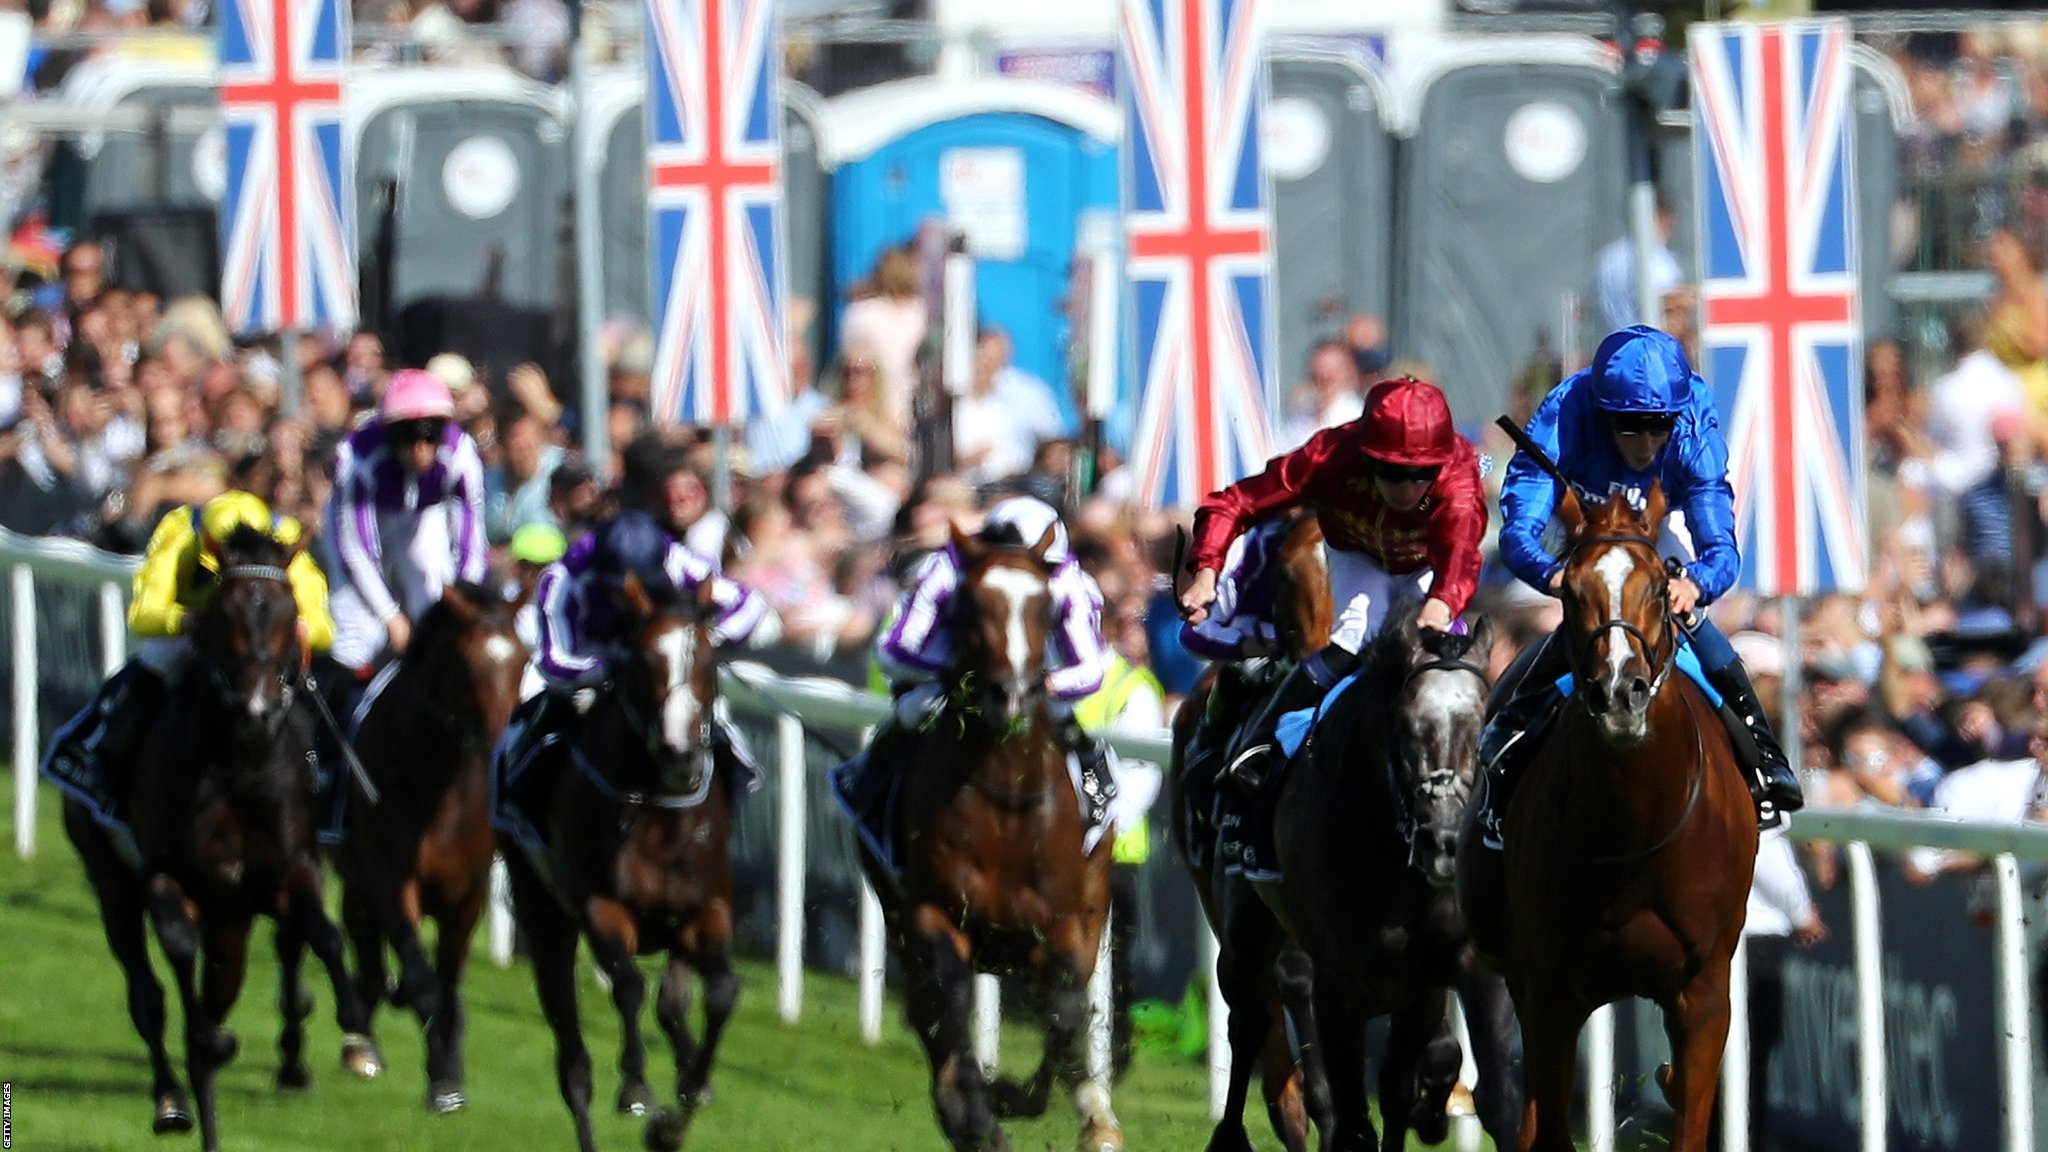 The Series: Eight racecourses commit to hosting new team competition